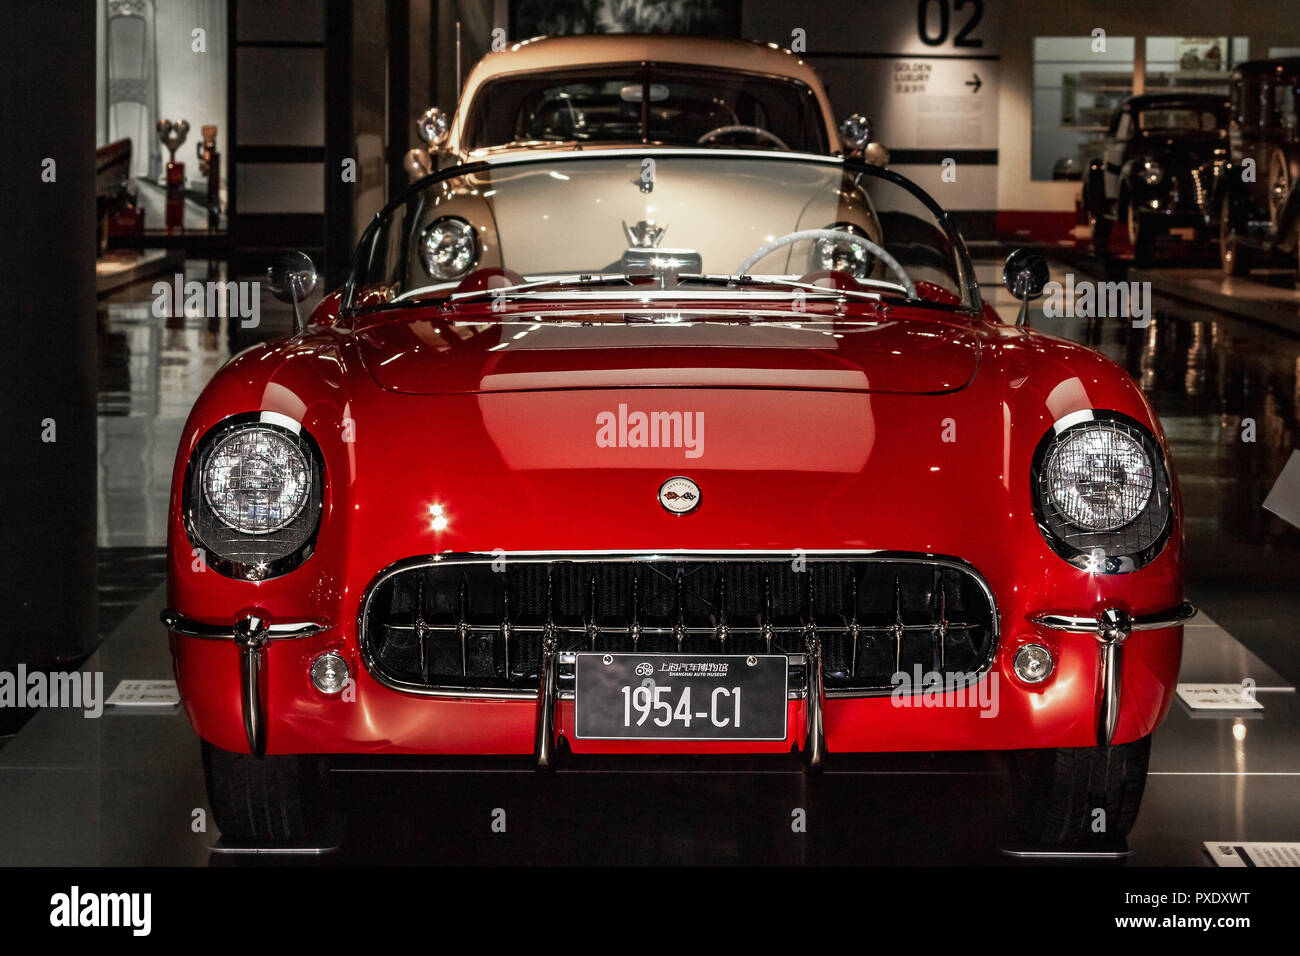 Shanghai Auto Museum exhibits a collection of vintage and modern automobiles, details and the device and development automotive industry. Exebition in Shanghai city of China. - Stock Image